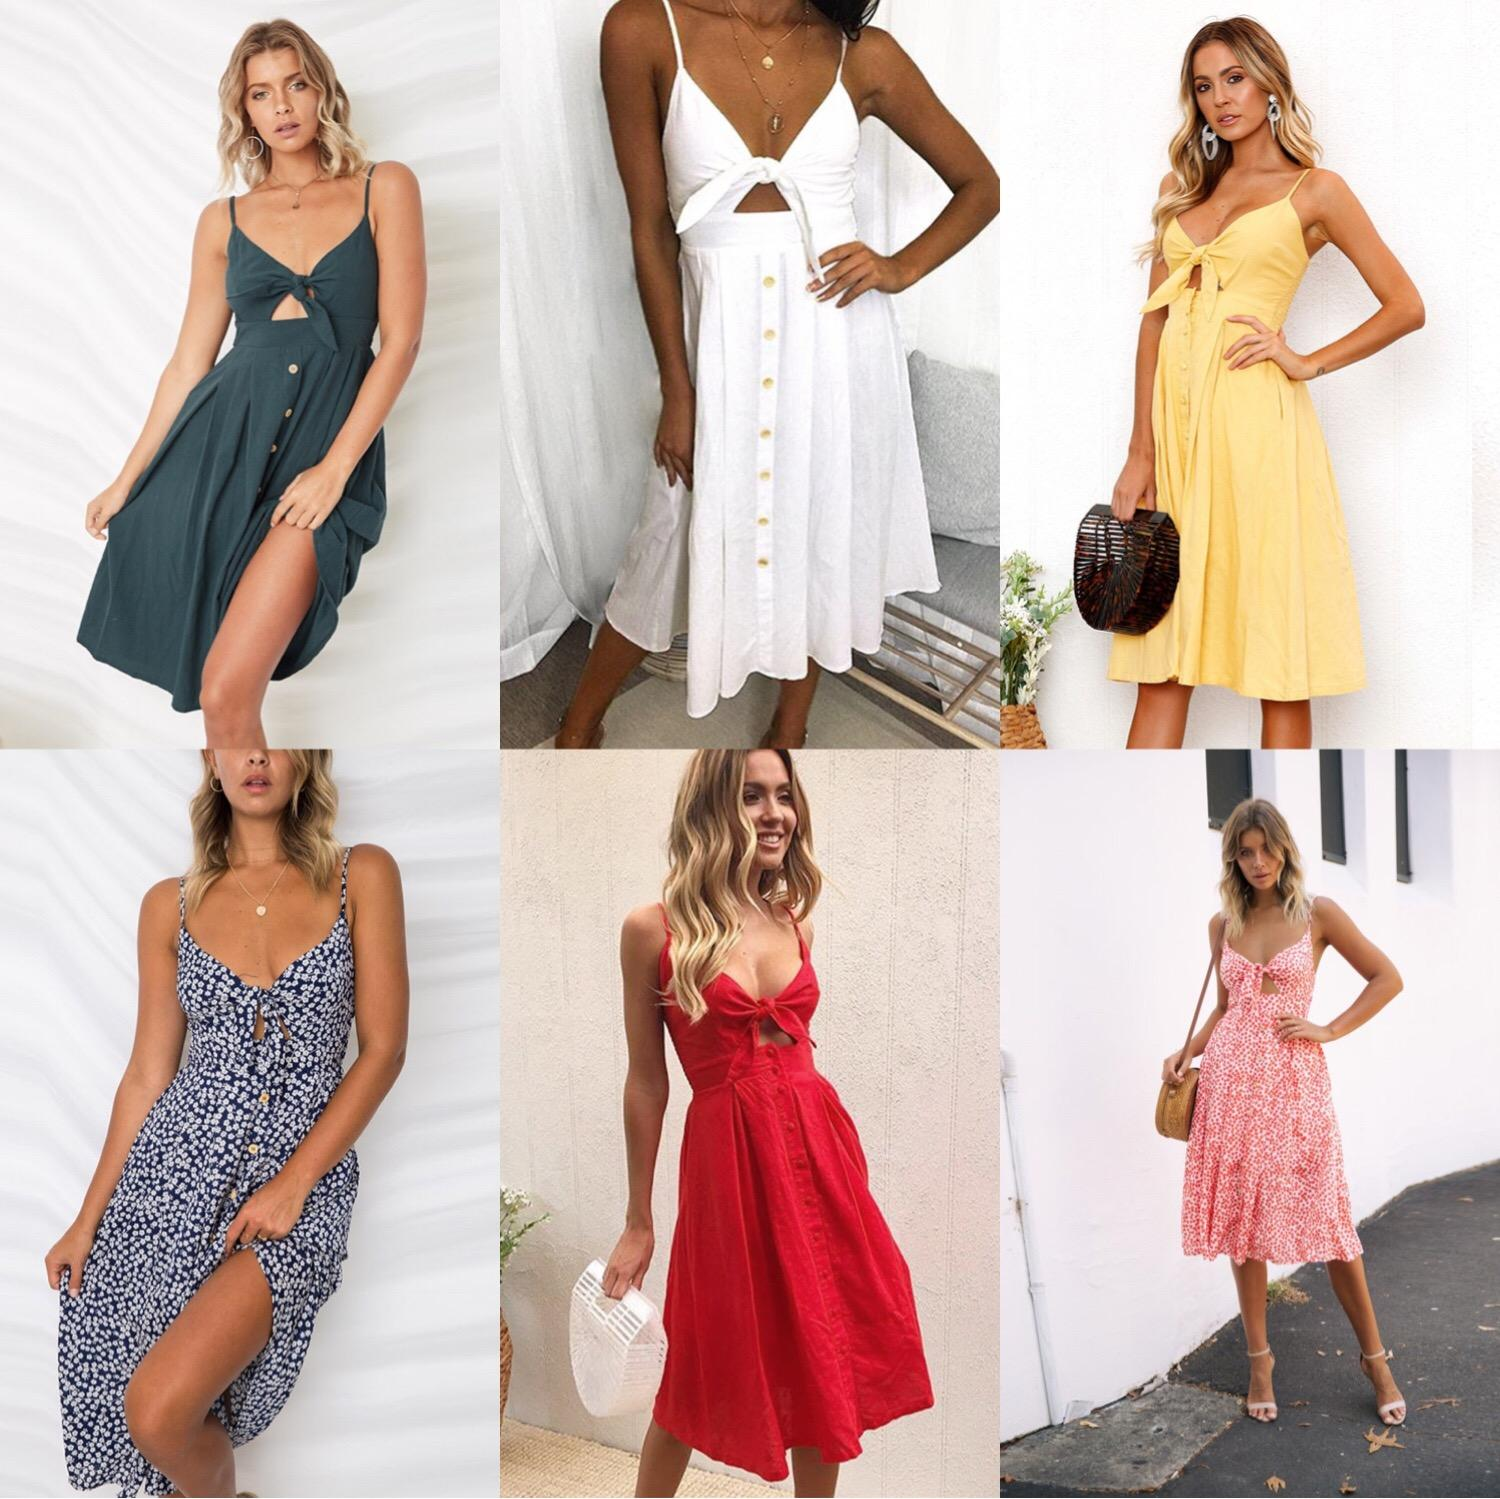 ac5f952ae25 Women Summer Dresses Clothes Stylish Casual Long Dress Backless Lady  Clothing Pocket Catsuit Lingerie Fetish Club Wear Steampunk Bustier Online  with ...